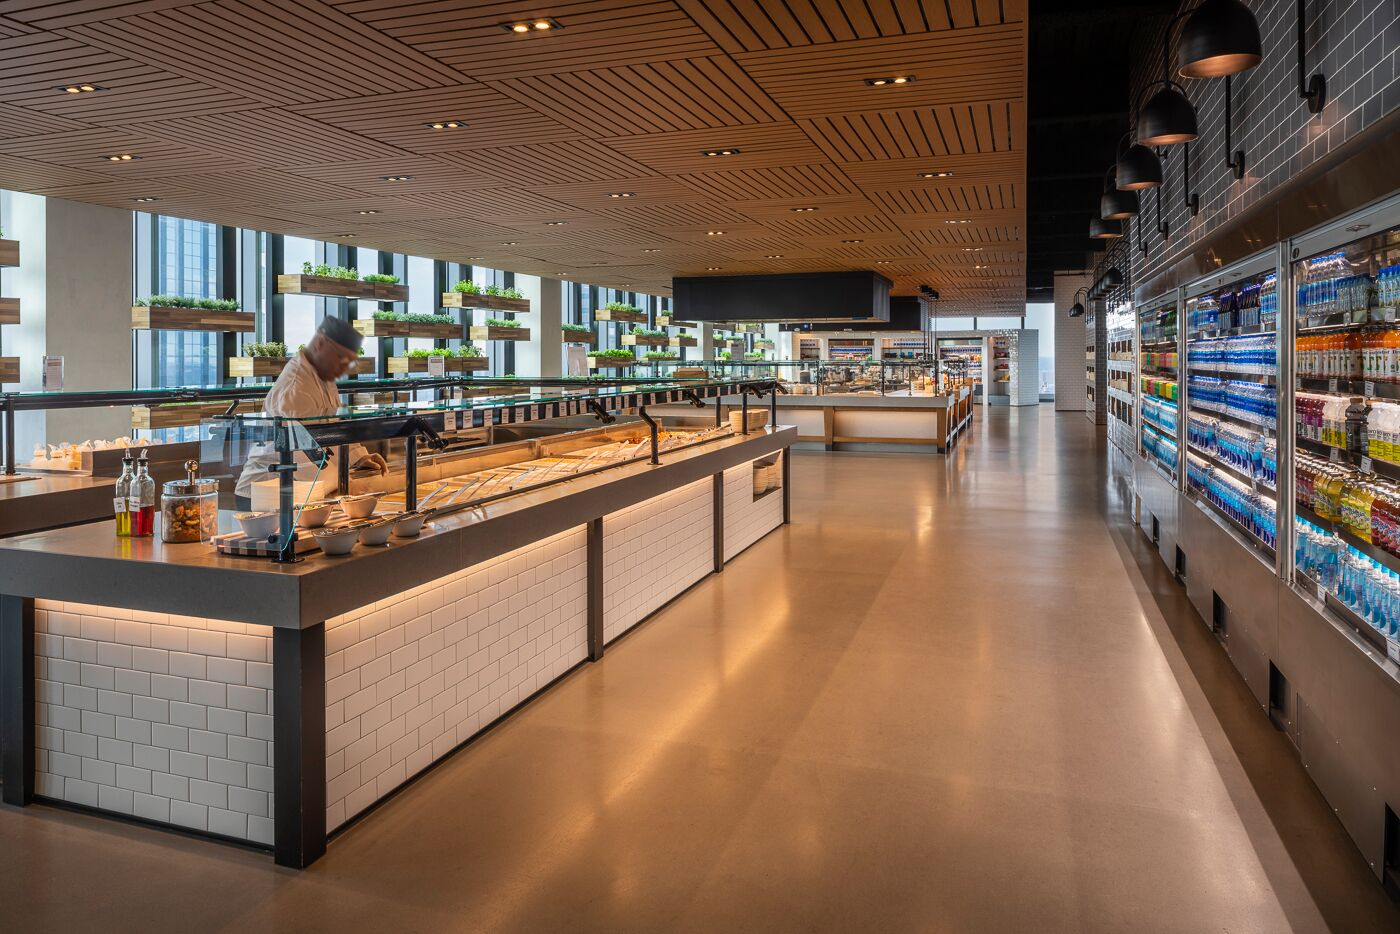 """The Market"" accommodates a wide array of self-serve food stations that offer a range of food from pizza to sushi. They also have on display, a wall of fresh herbs, pictured top left."